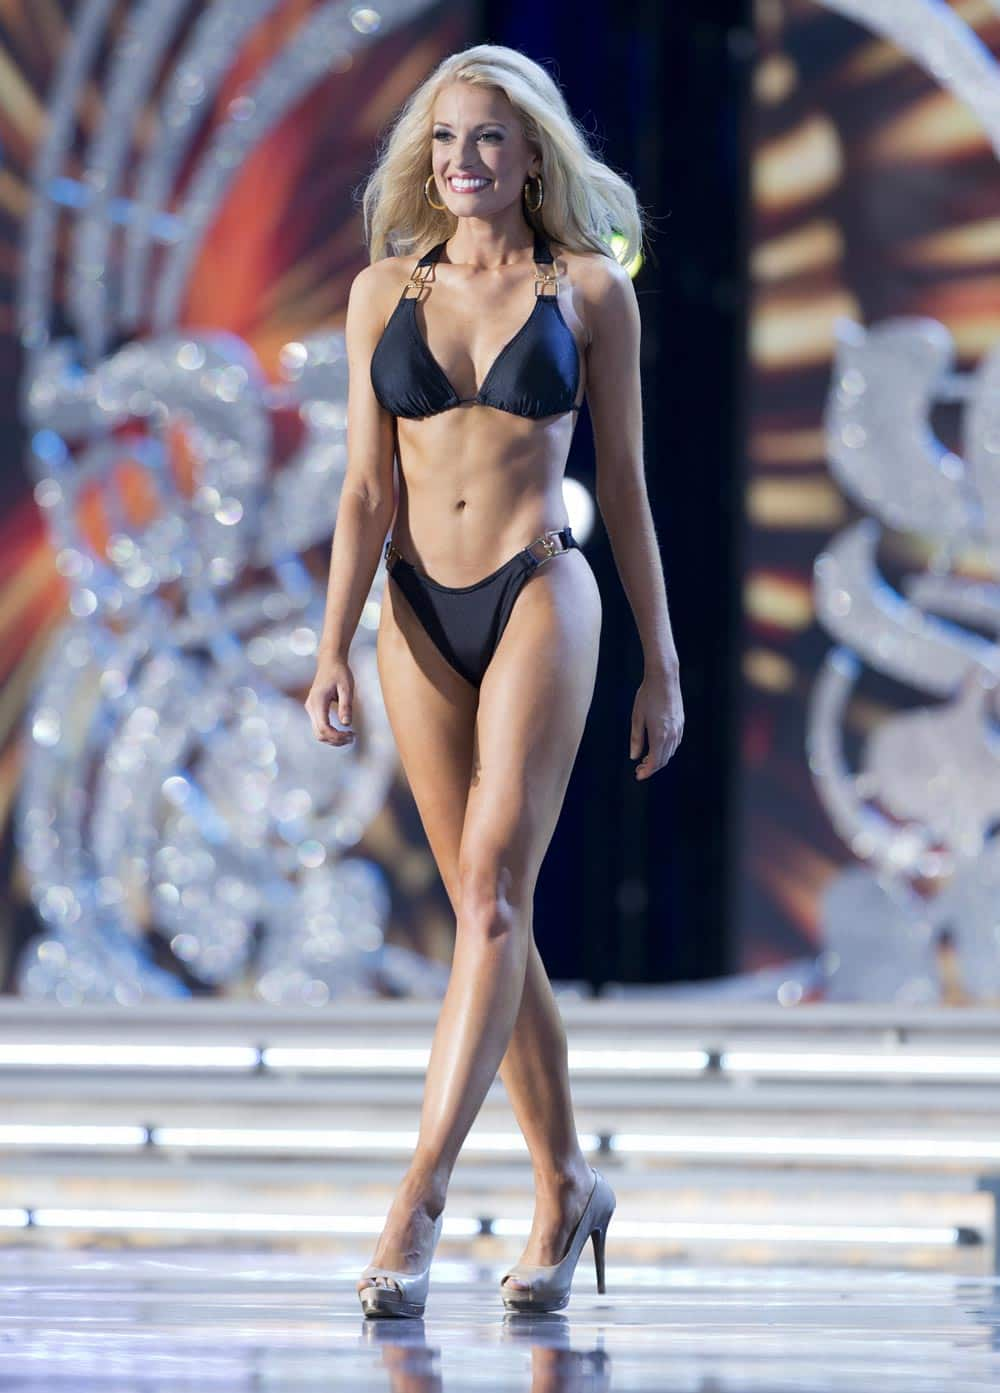 Miss Mississippi Chelsea Rick participating in the swimsuit competition during first night of preliminaries for the Miss America pageant in Atlantic City, N.J. Rick won the swimsuit competition.